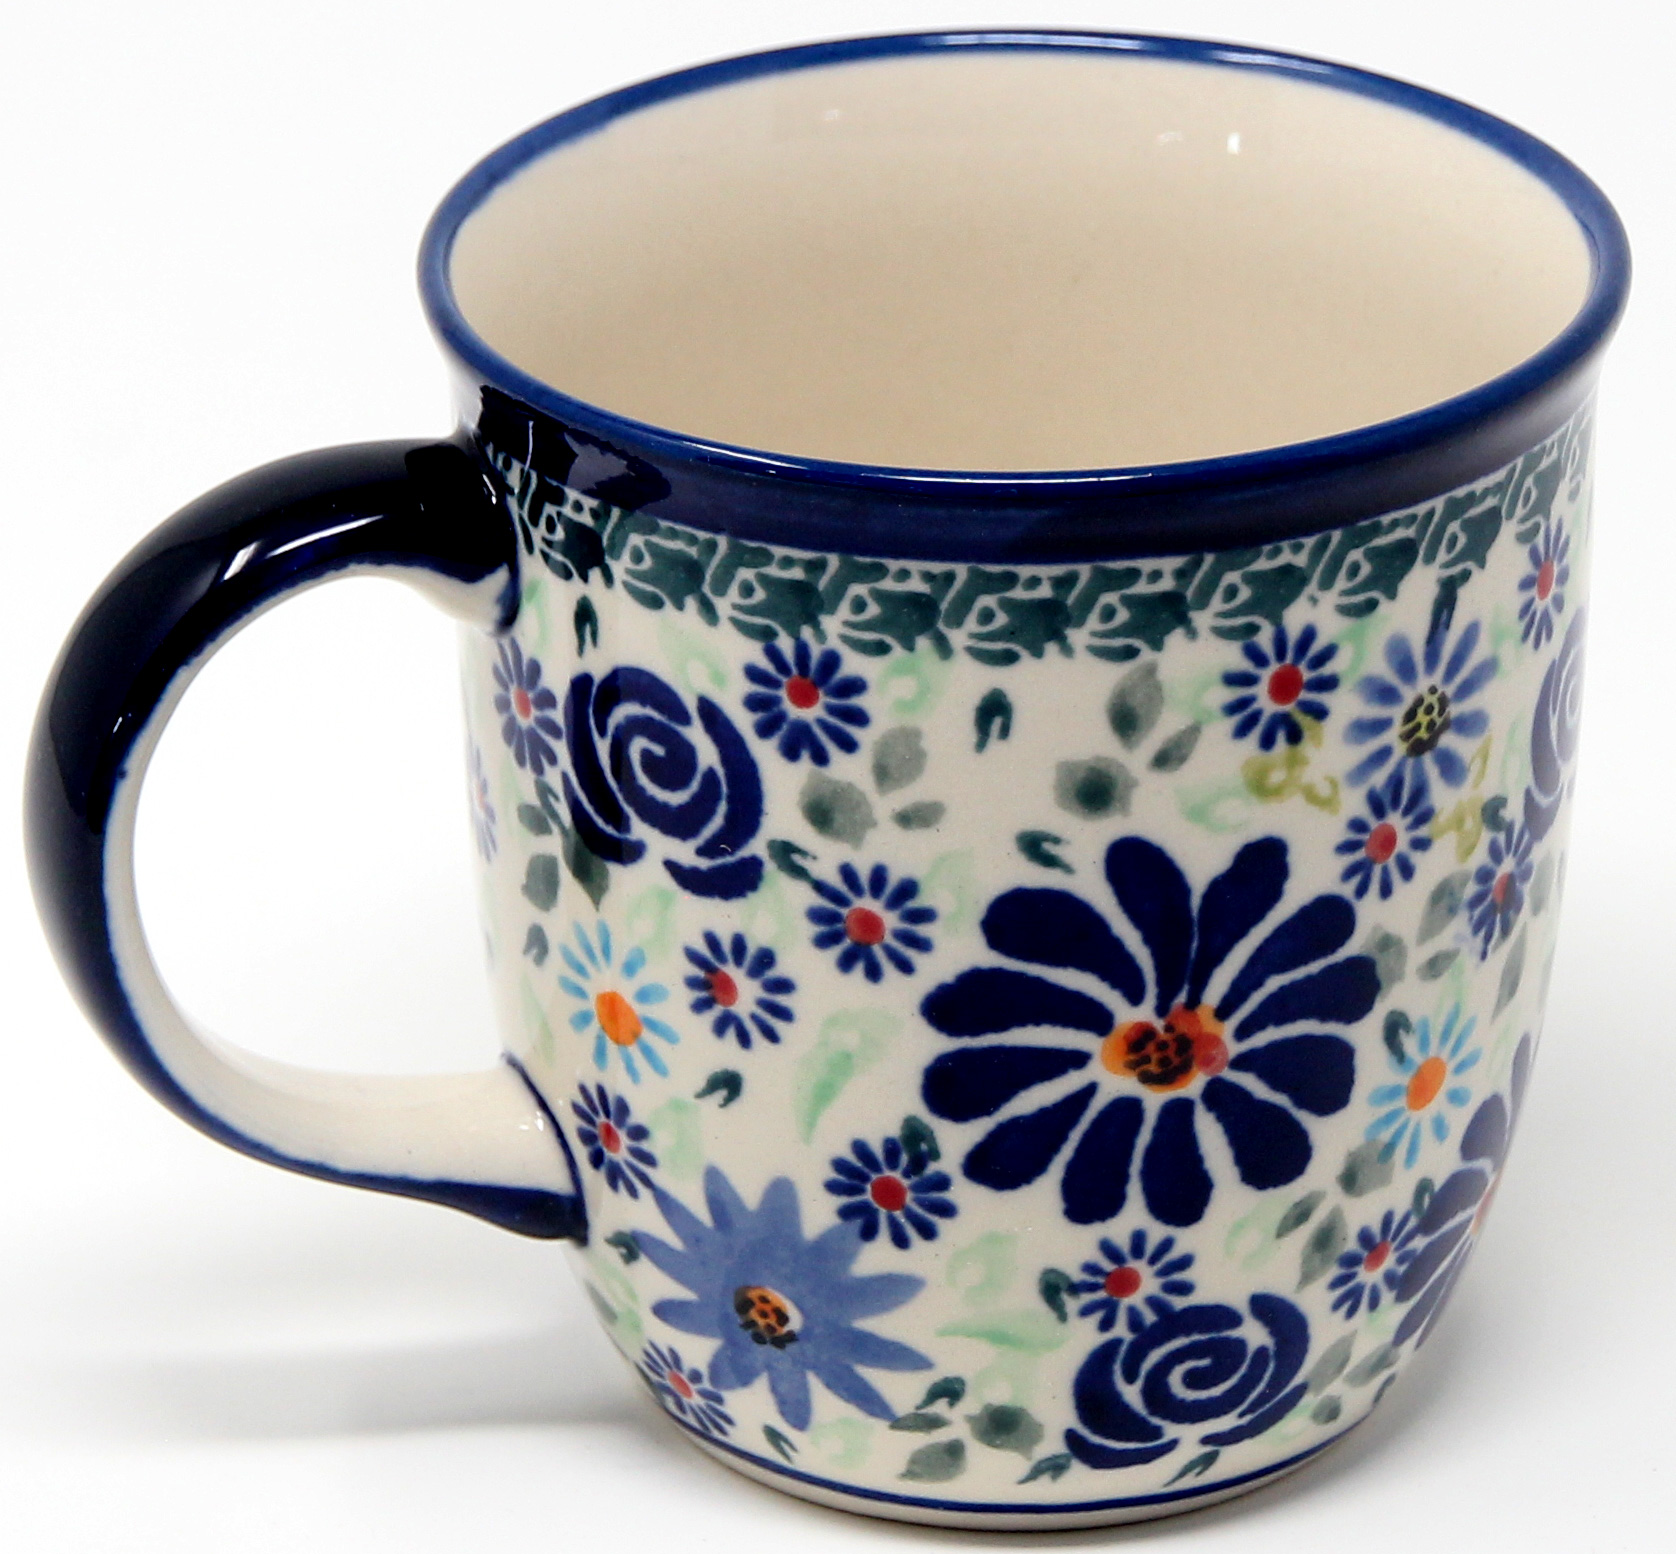 Mug 12 Oz. Polish Pottery made by Zaklady in DU126 Pattern